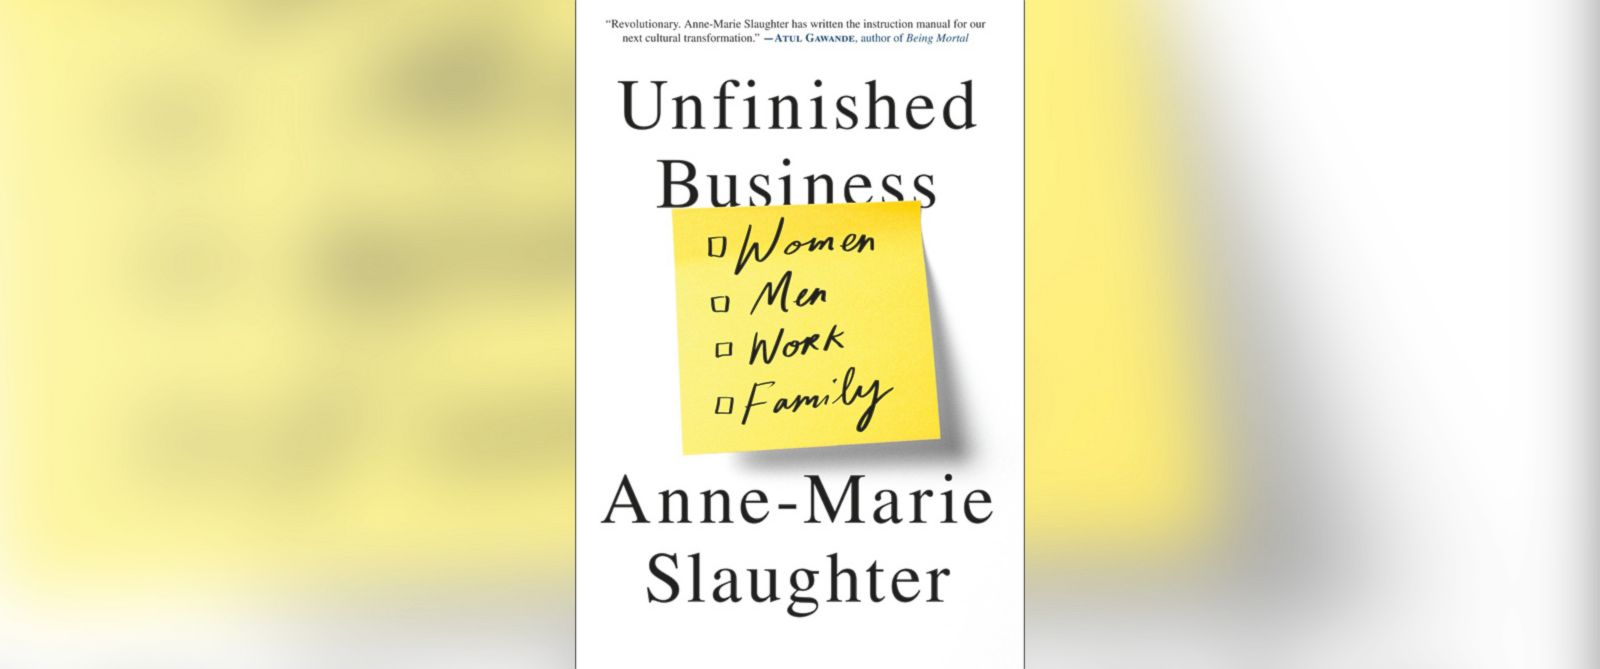 PHOTO: Book cover for Unfinished Business by Anne-Marie Slaughter.